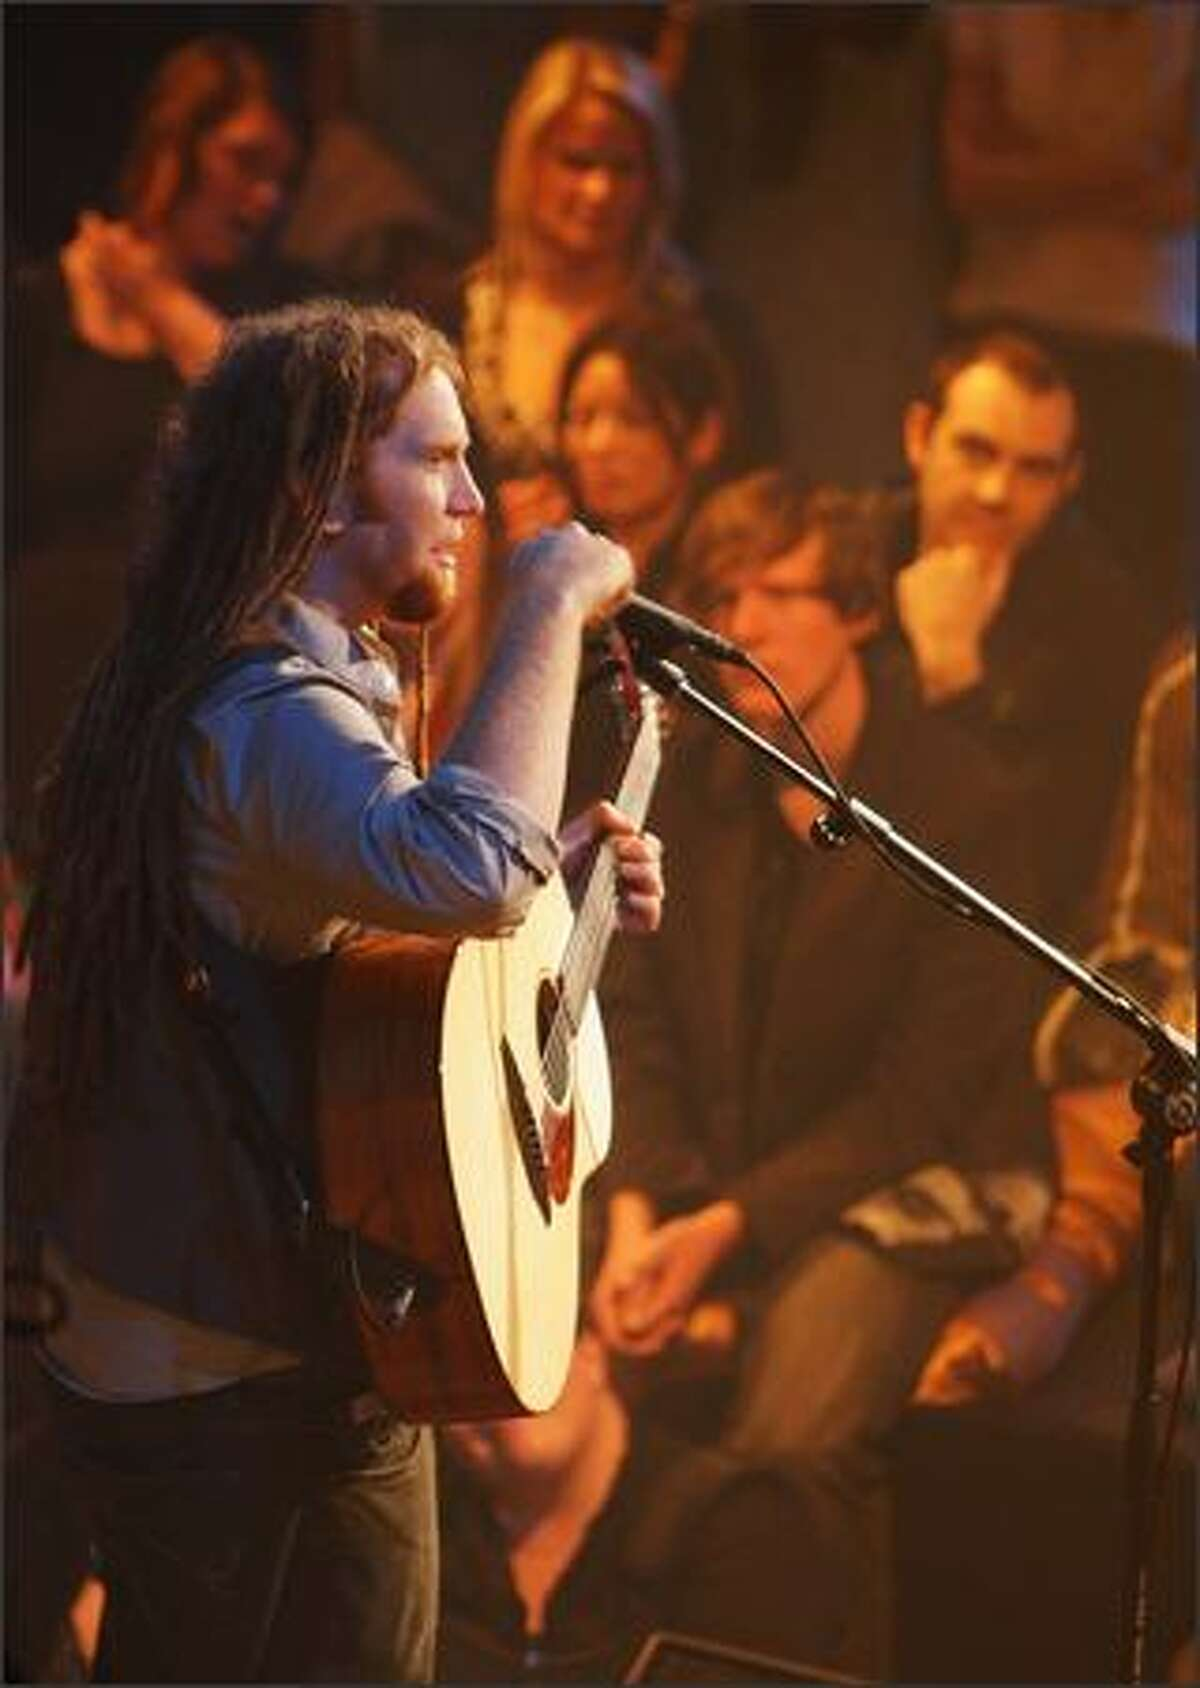 Musician Newton Faulkner performs on stage during the Max Sessions concert series at the Sydney Opera House on on Tuesday in Sydney, Australia.